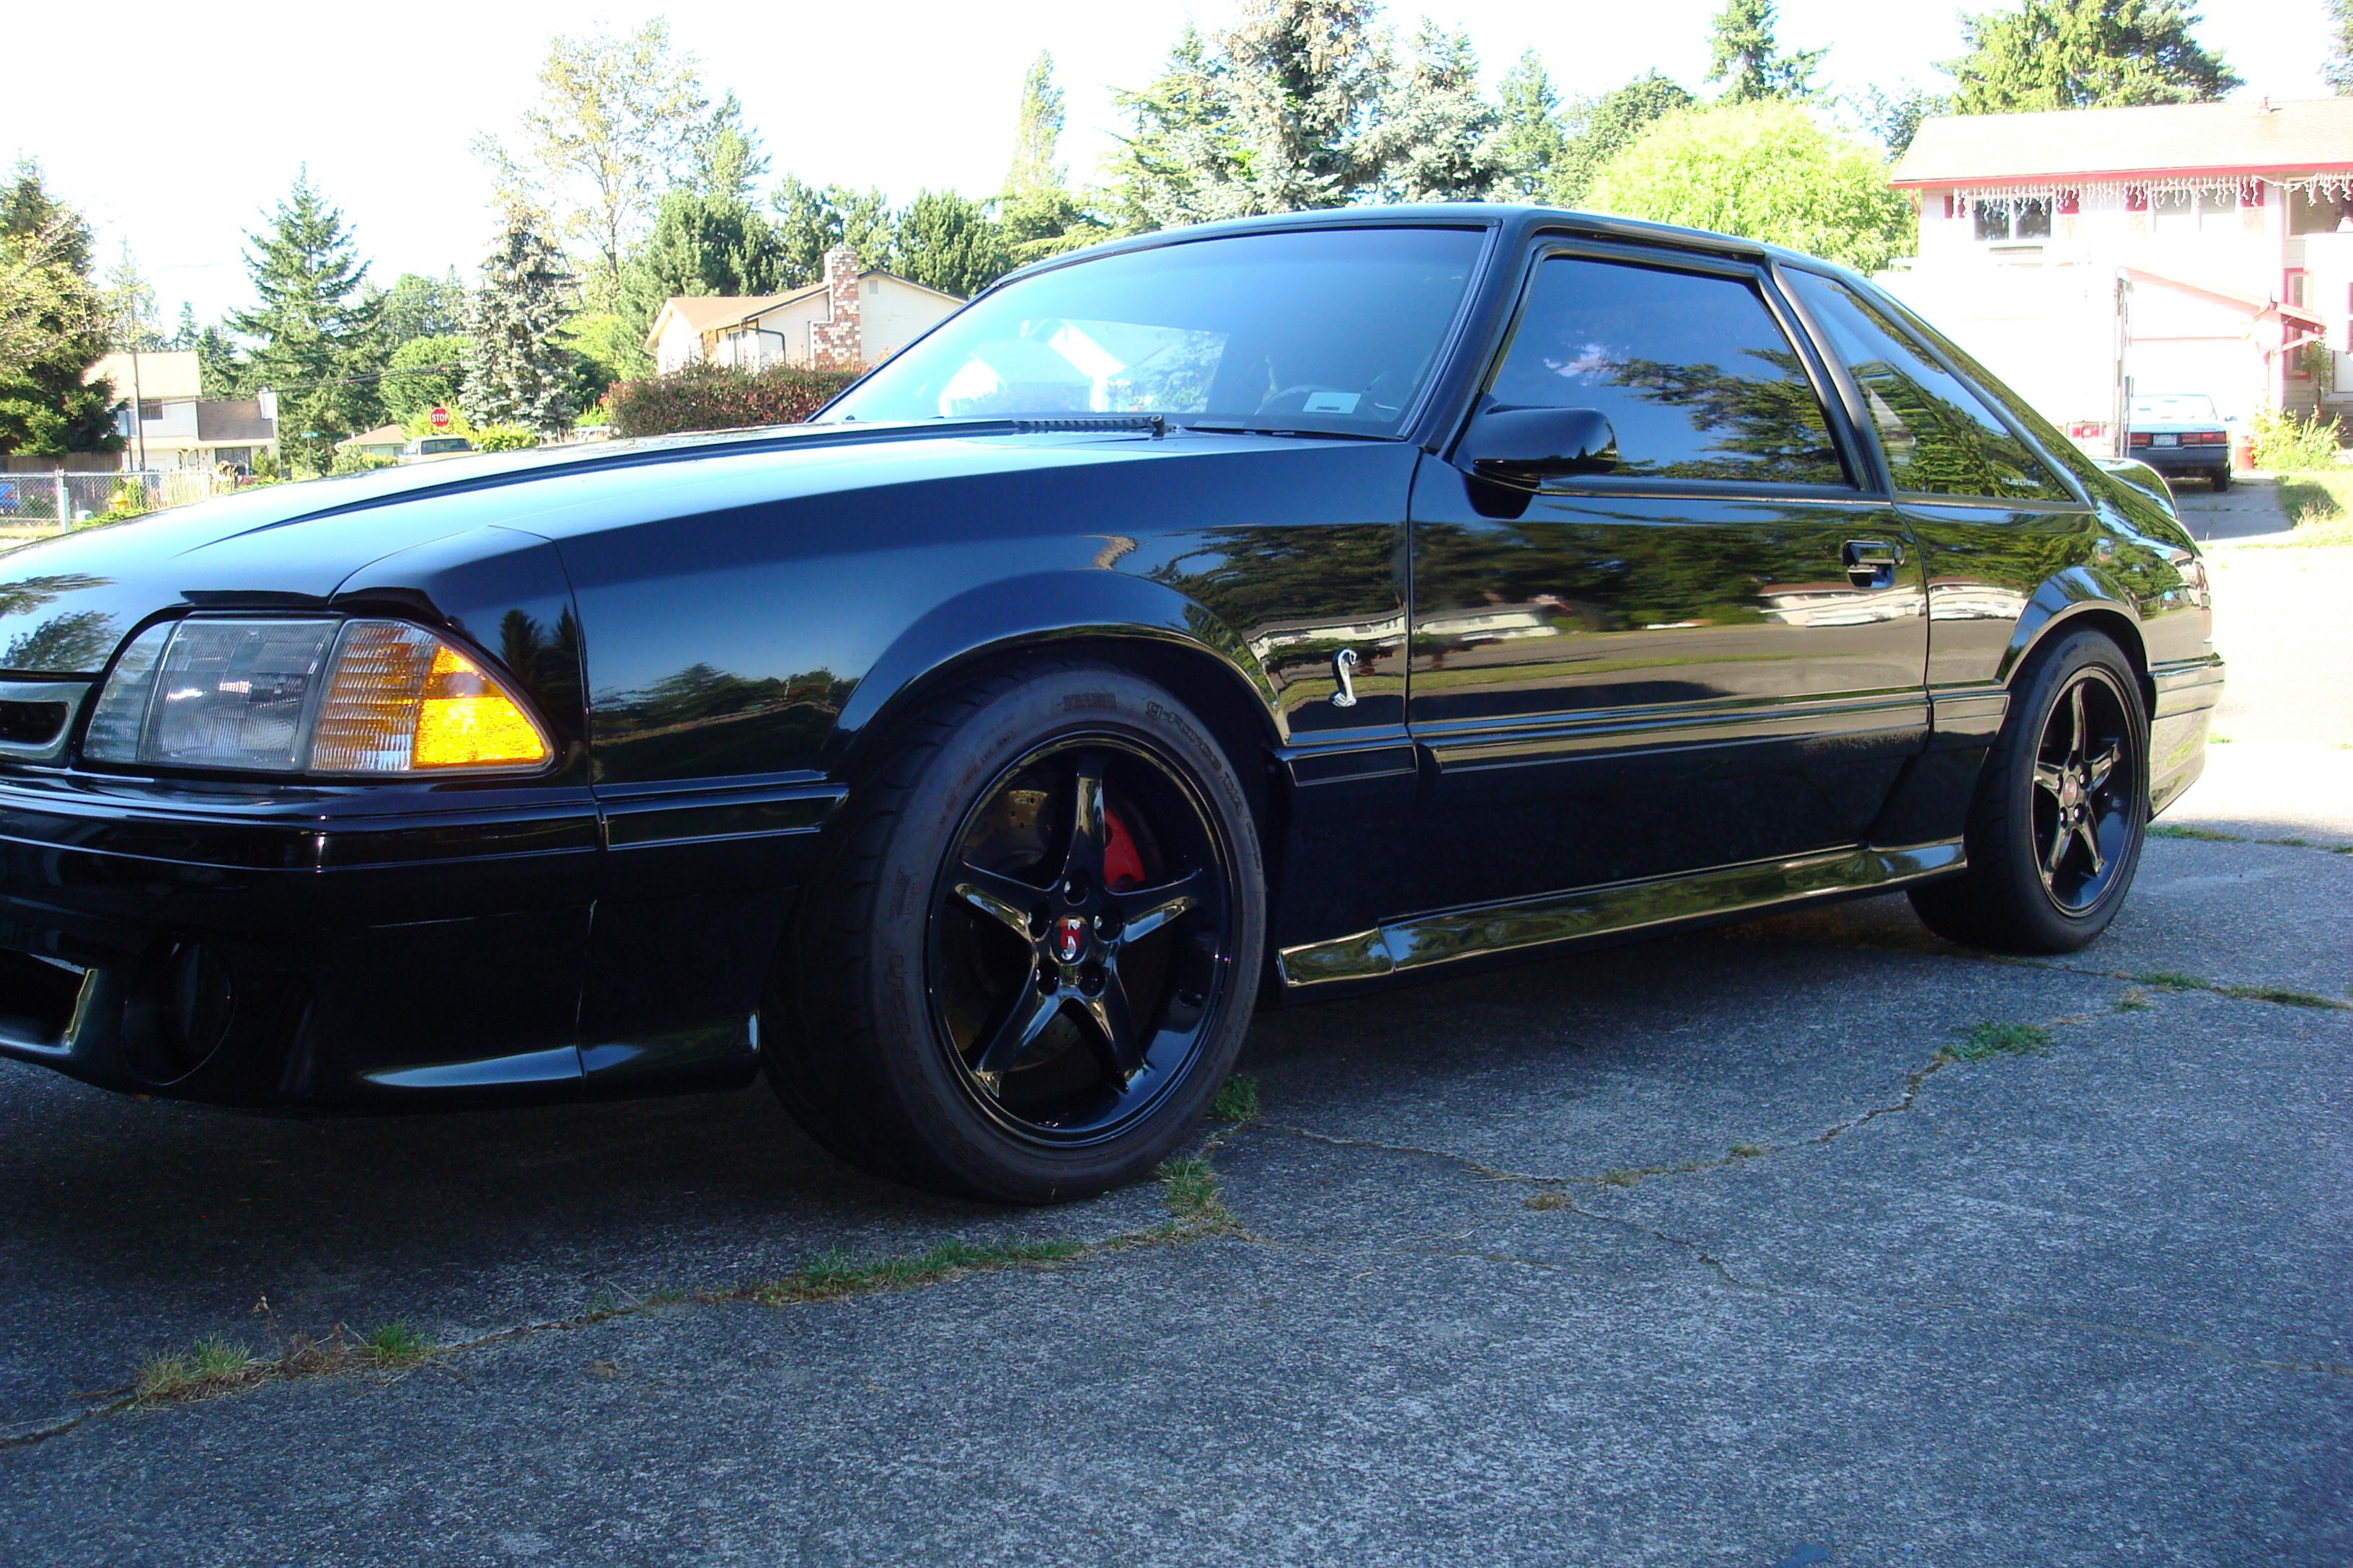 Click image for larger version  Name:Mustang Cobra 002.jpg Views:134 Size:1.00 MB ID:31445